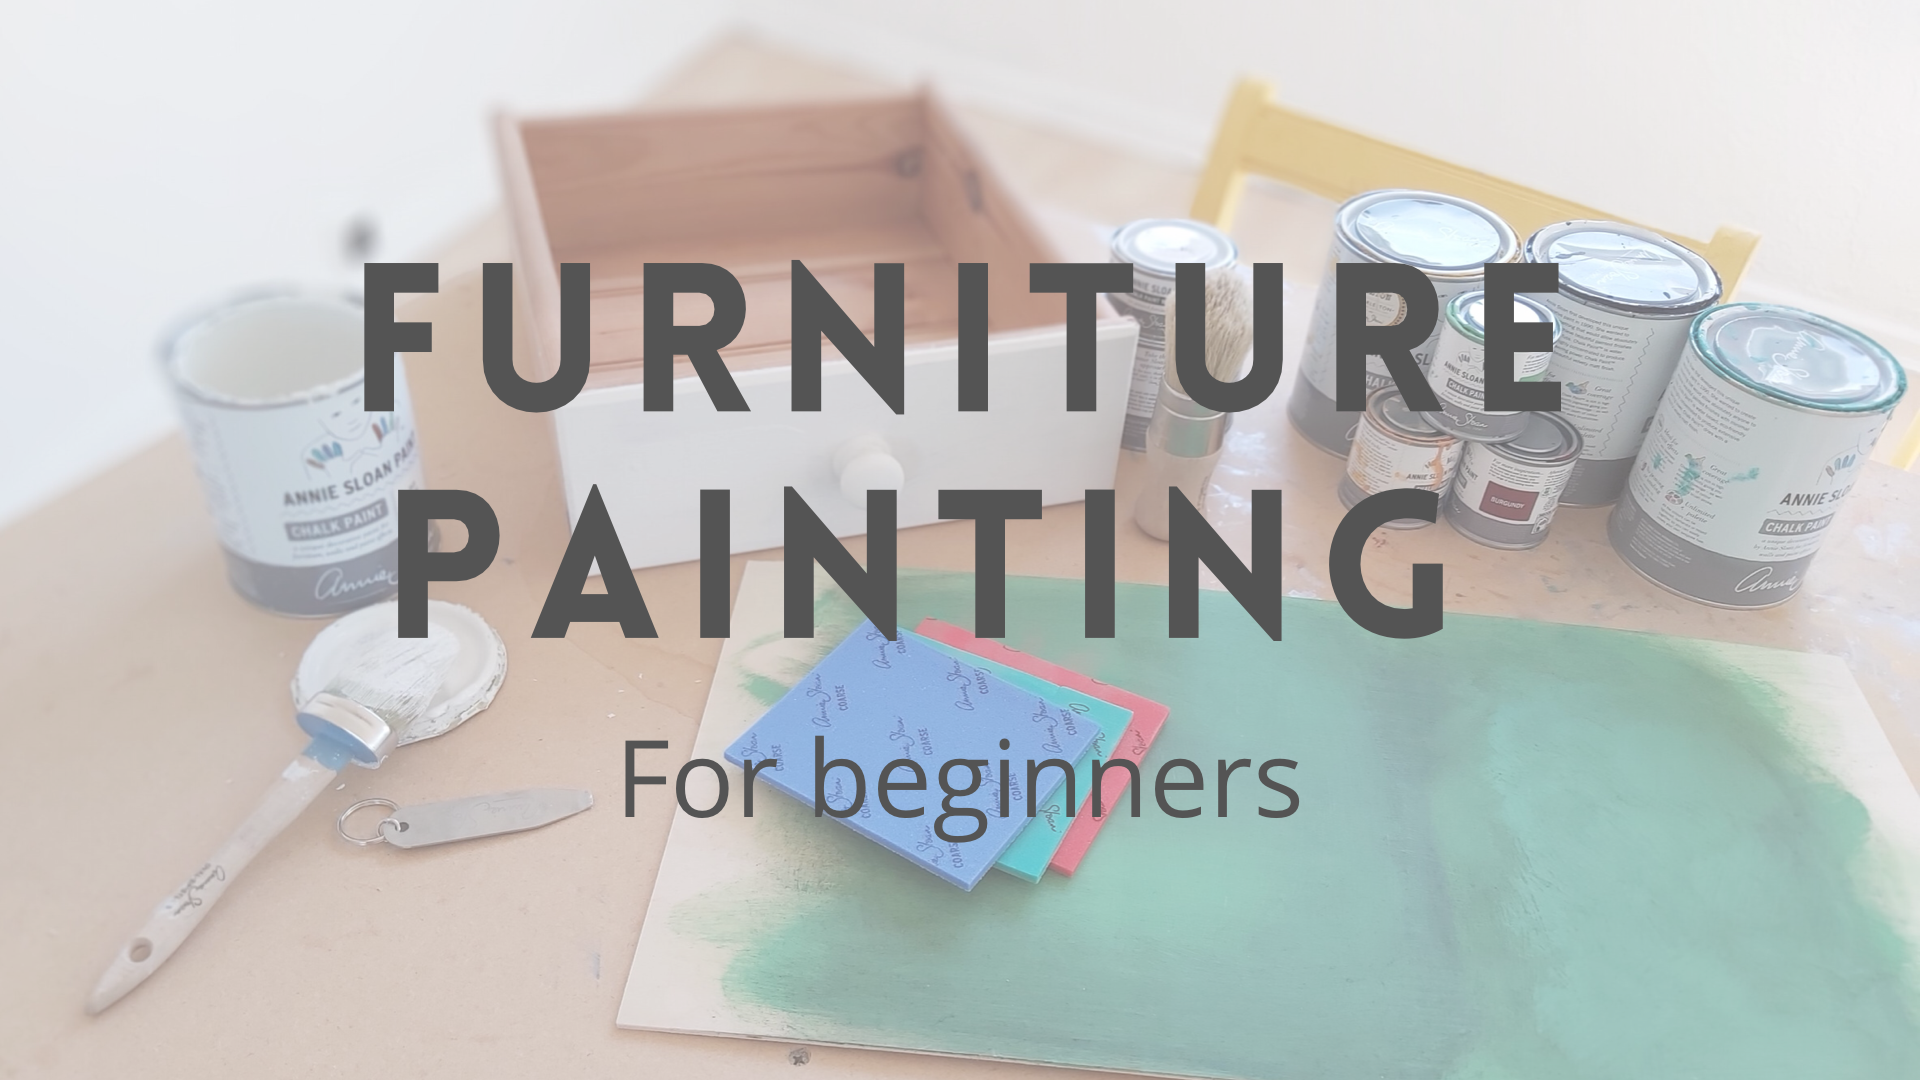 Furniture Painting- for beginners